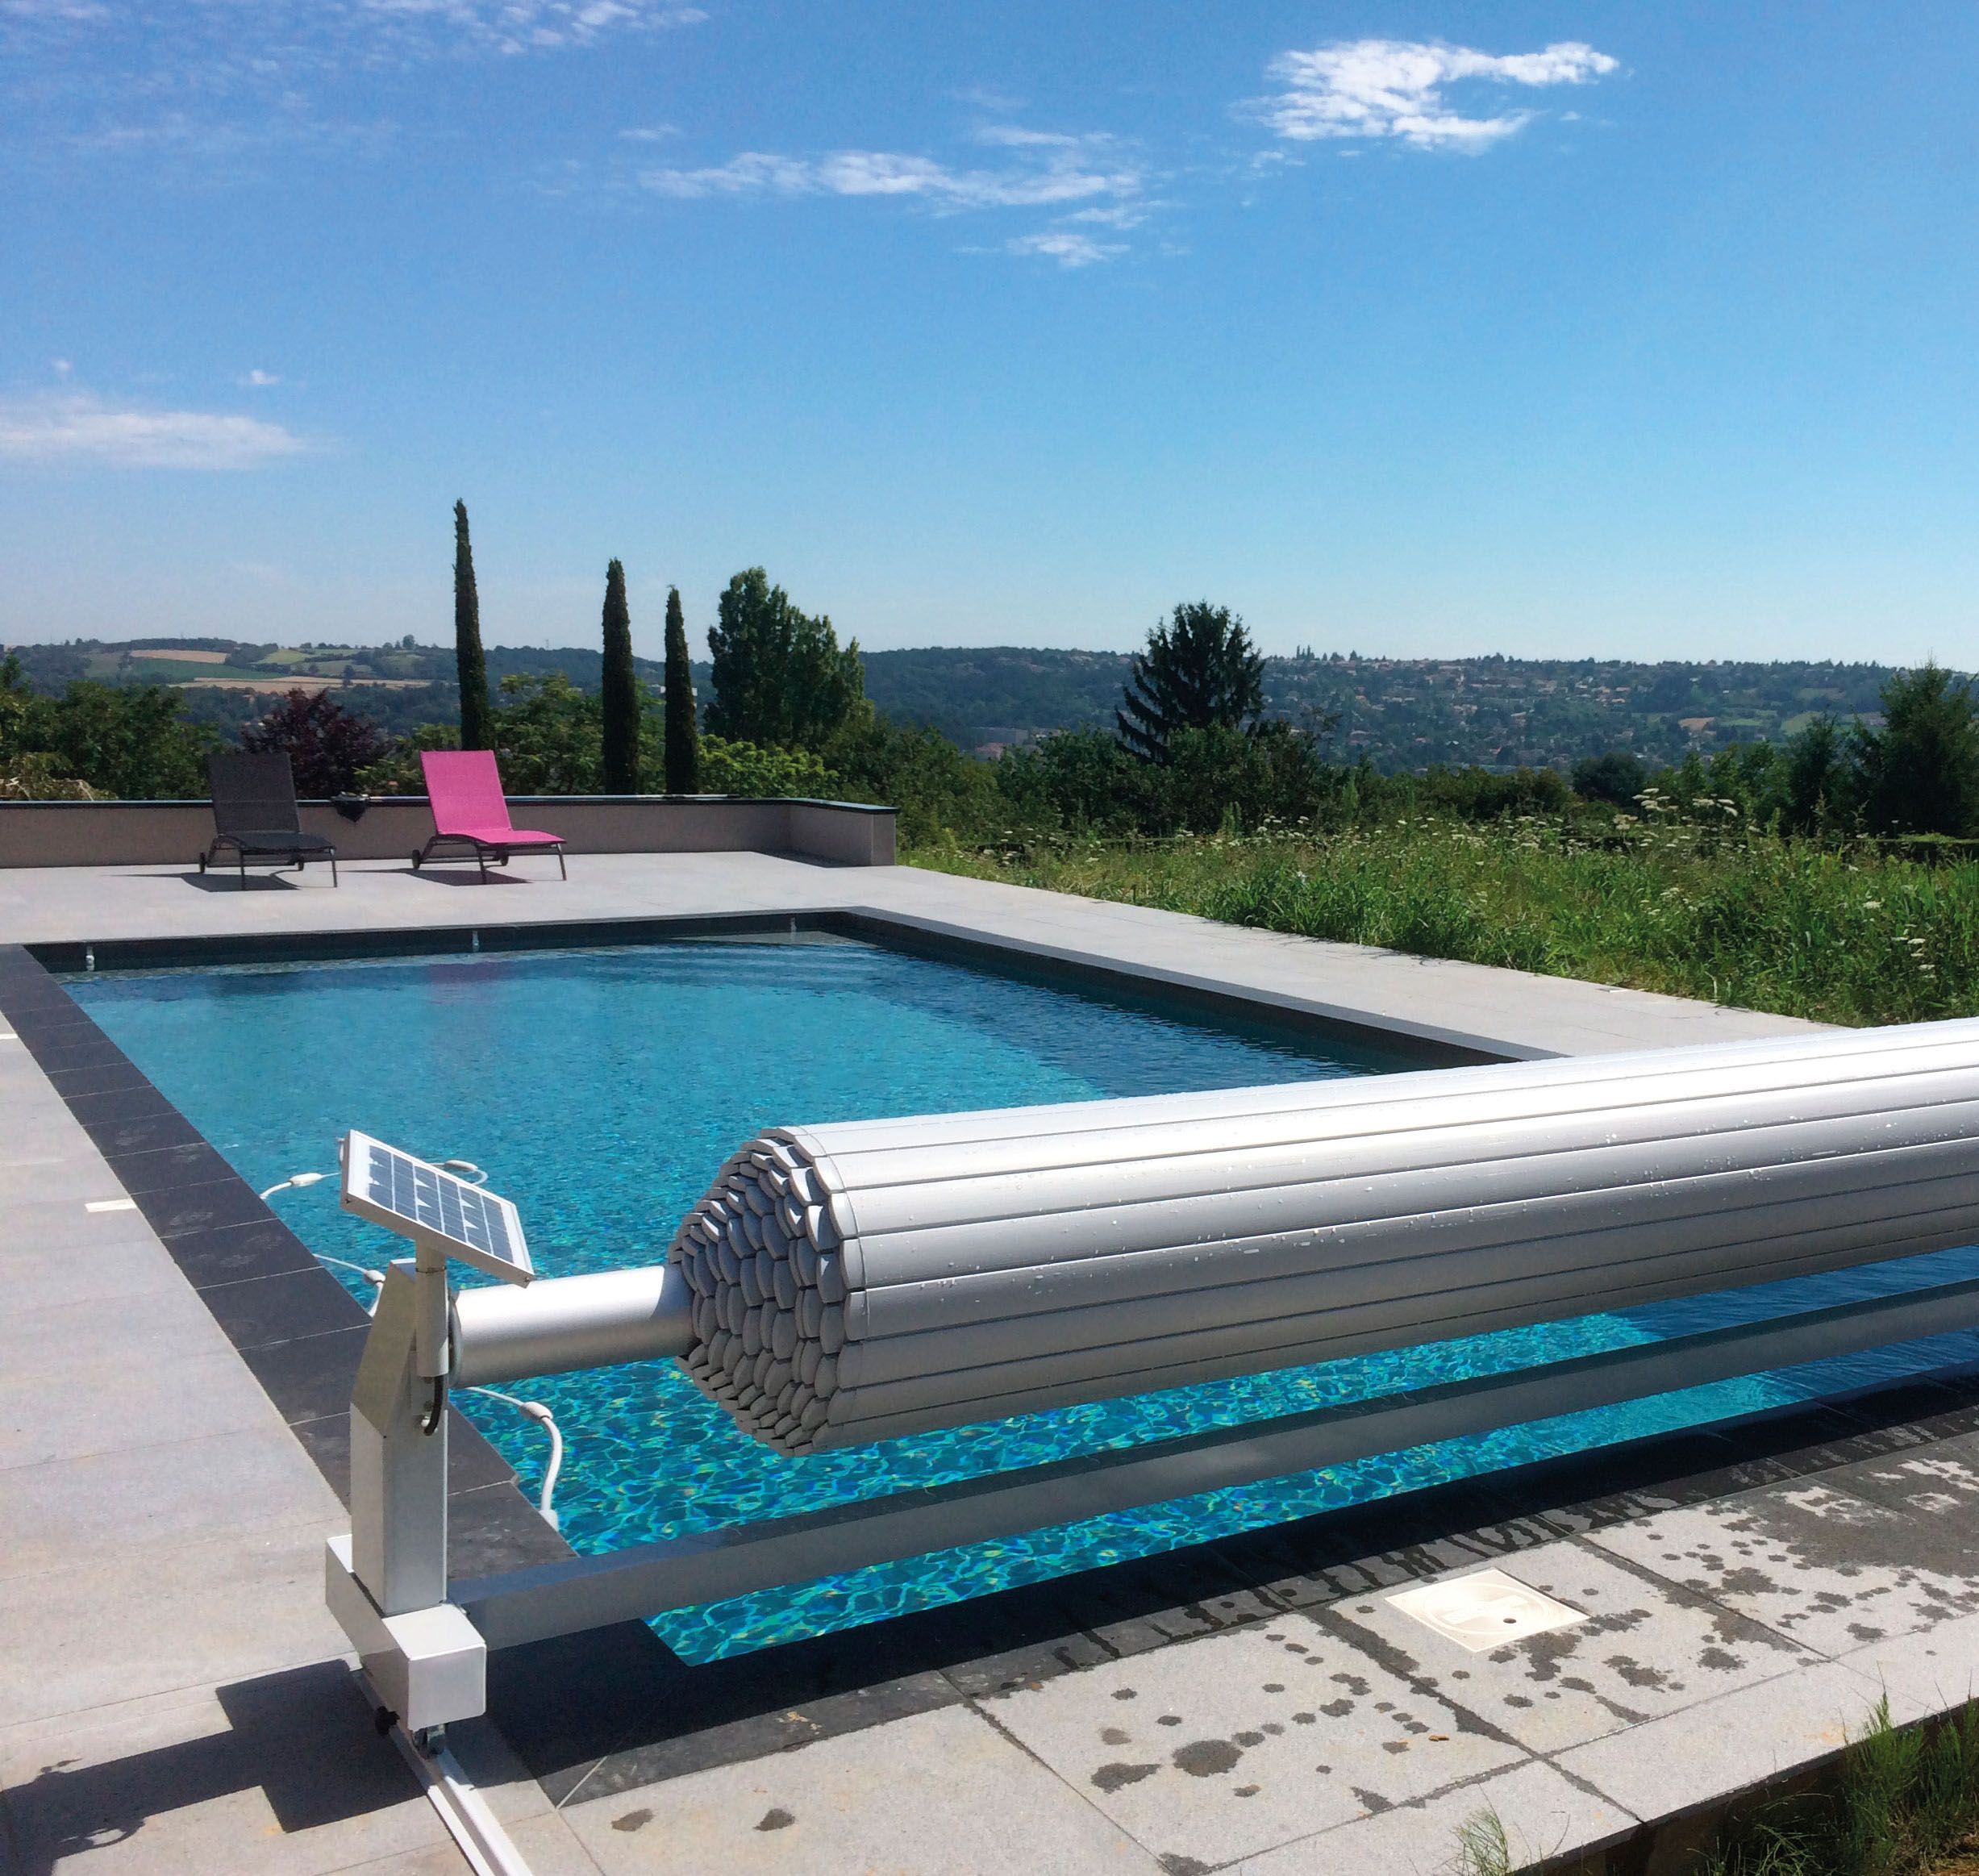 Volet De Piscine Mobile Pour Piscine 6m X 3m Fabrication